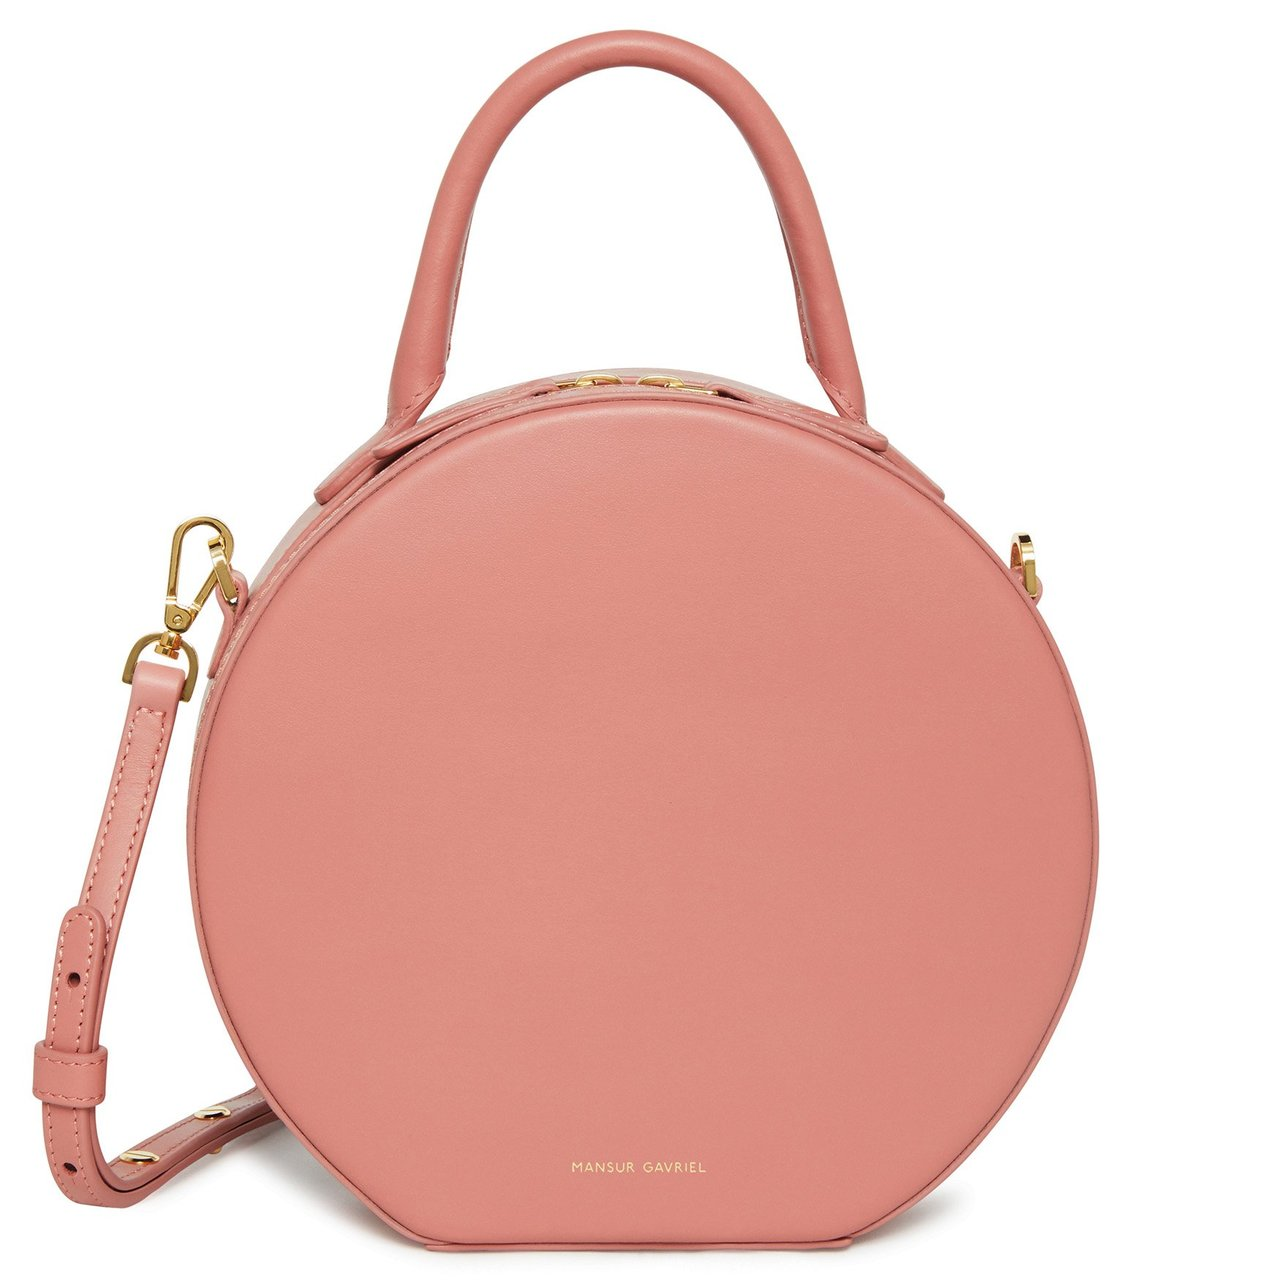 Mansur Gavriel Circle Crossbody Bag | Best Round Bags for Spring 2019 | CoffeeAndHandbags.com